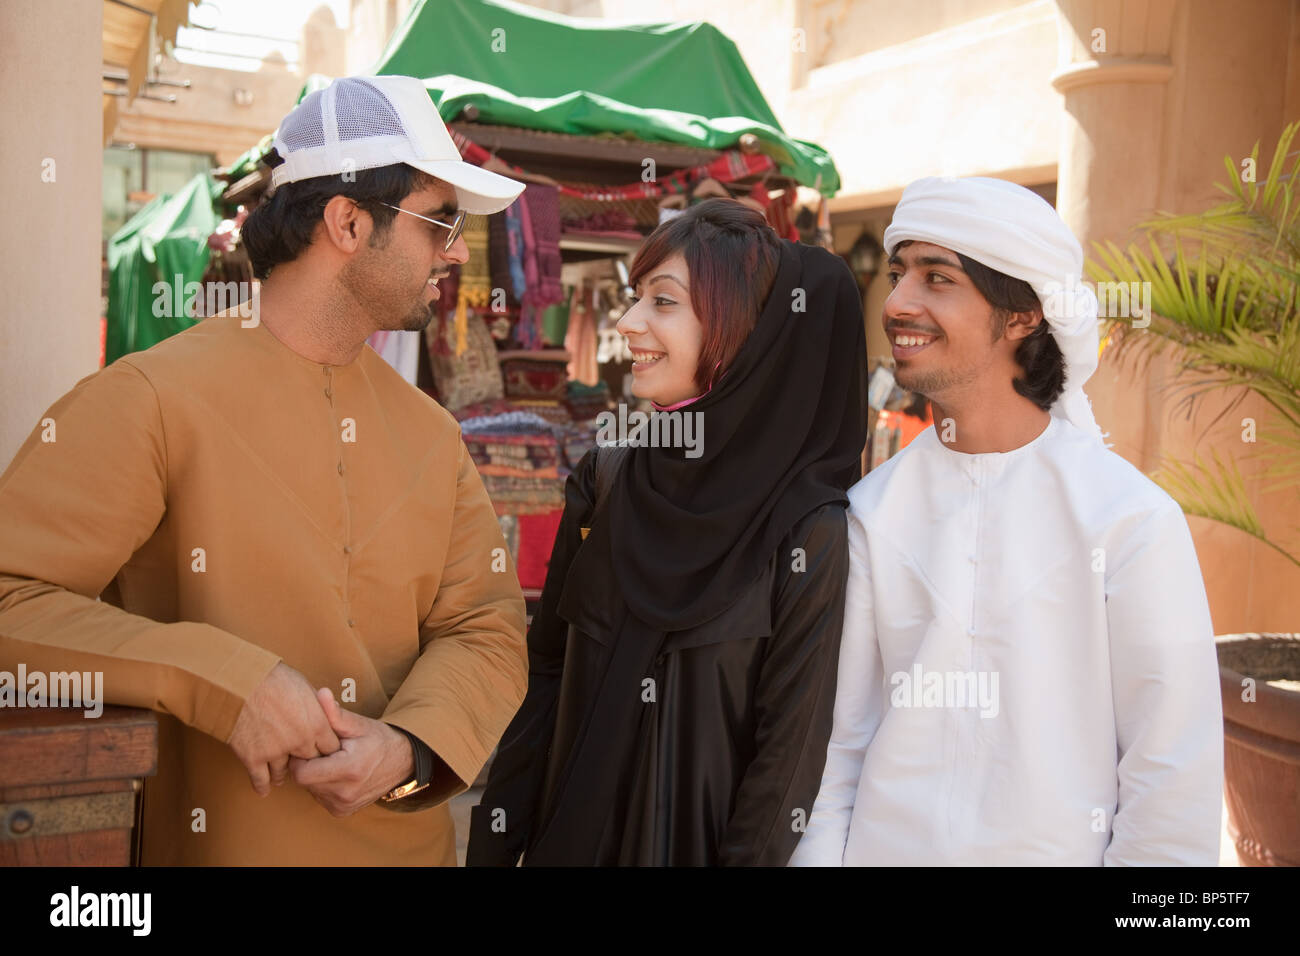 Middle Eastern people talking together - Stock Image